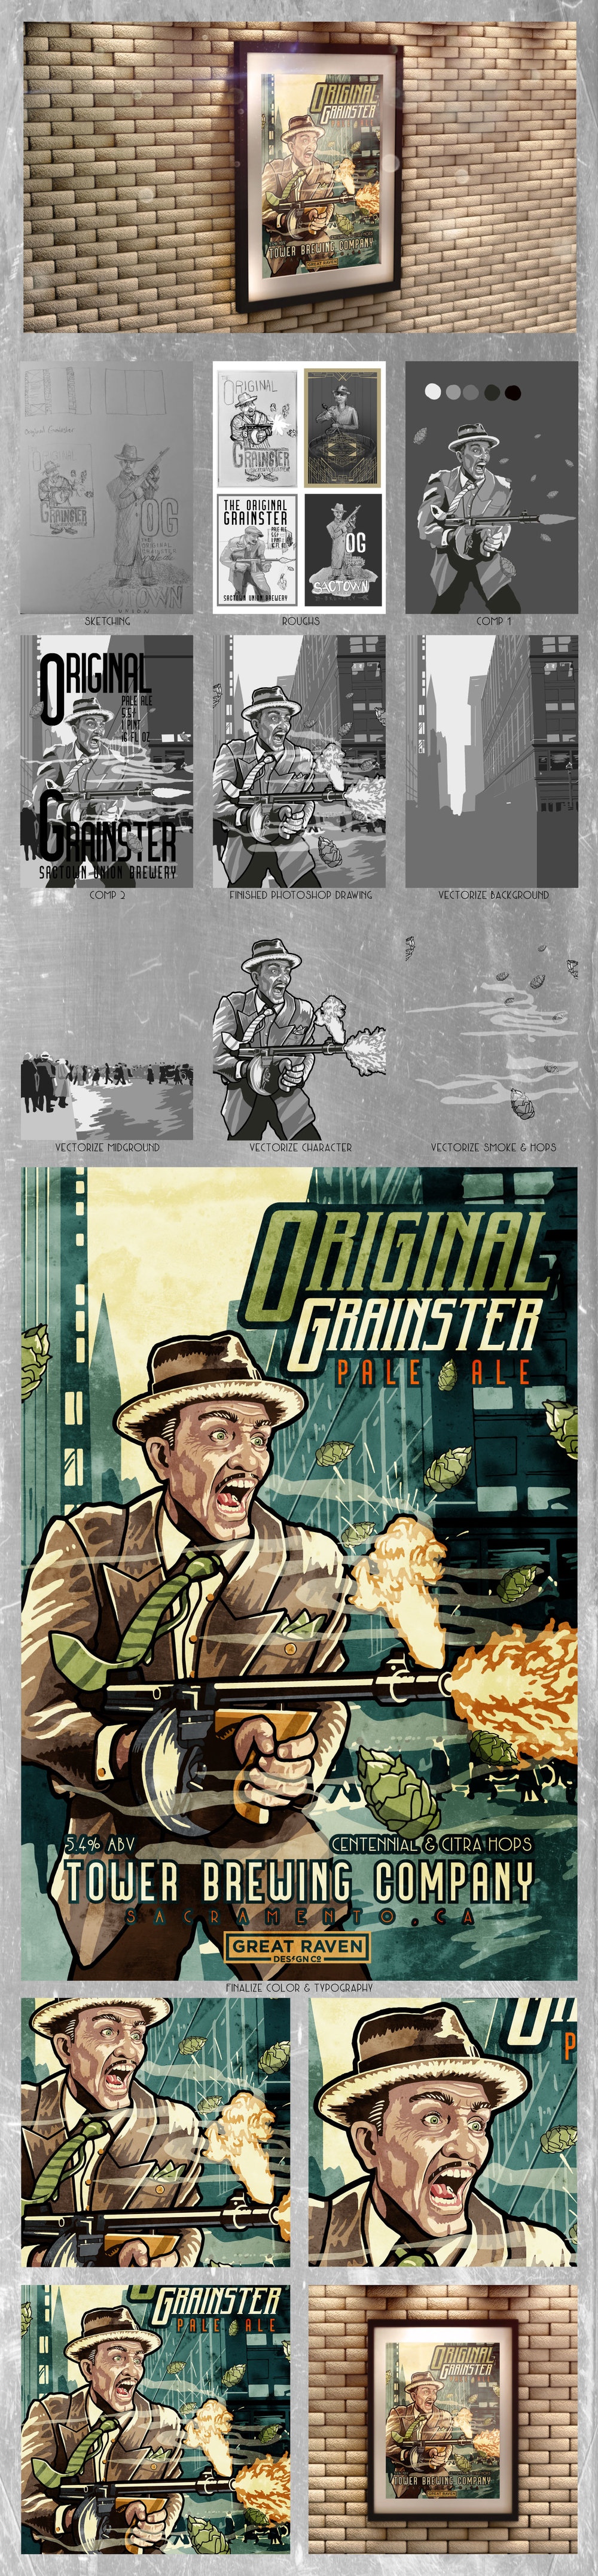 The-Original-Grainster_Poster_Behance_web-1.jpg